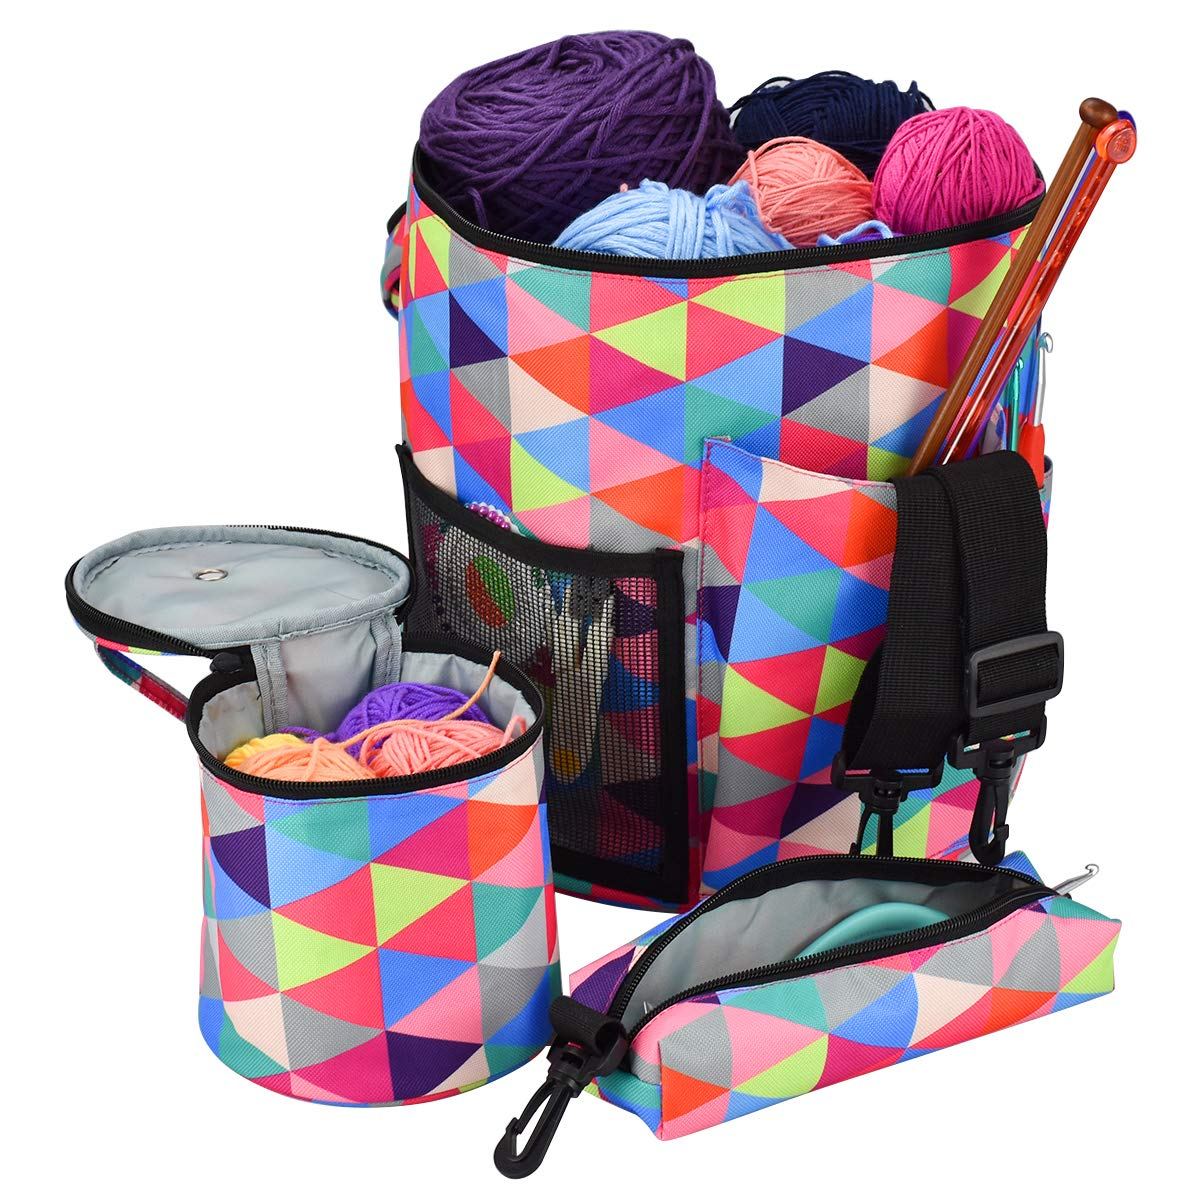 Large Capacity/Portable/Lightweight Yarn Storage Knitting Tote Organizer Bag with Shoulder Strap Handles Looen W/Pockets for Crochet Hooks & Knitting Needles(Rainbow Color Set 2)